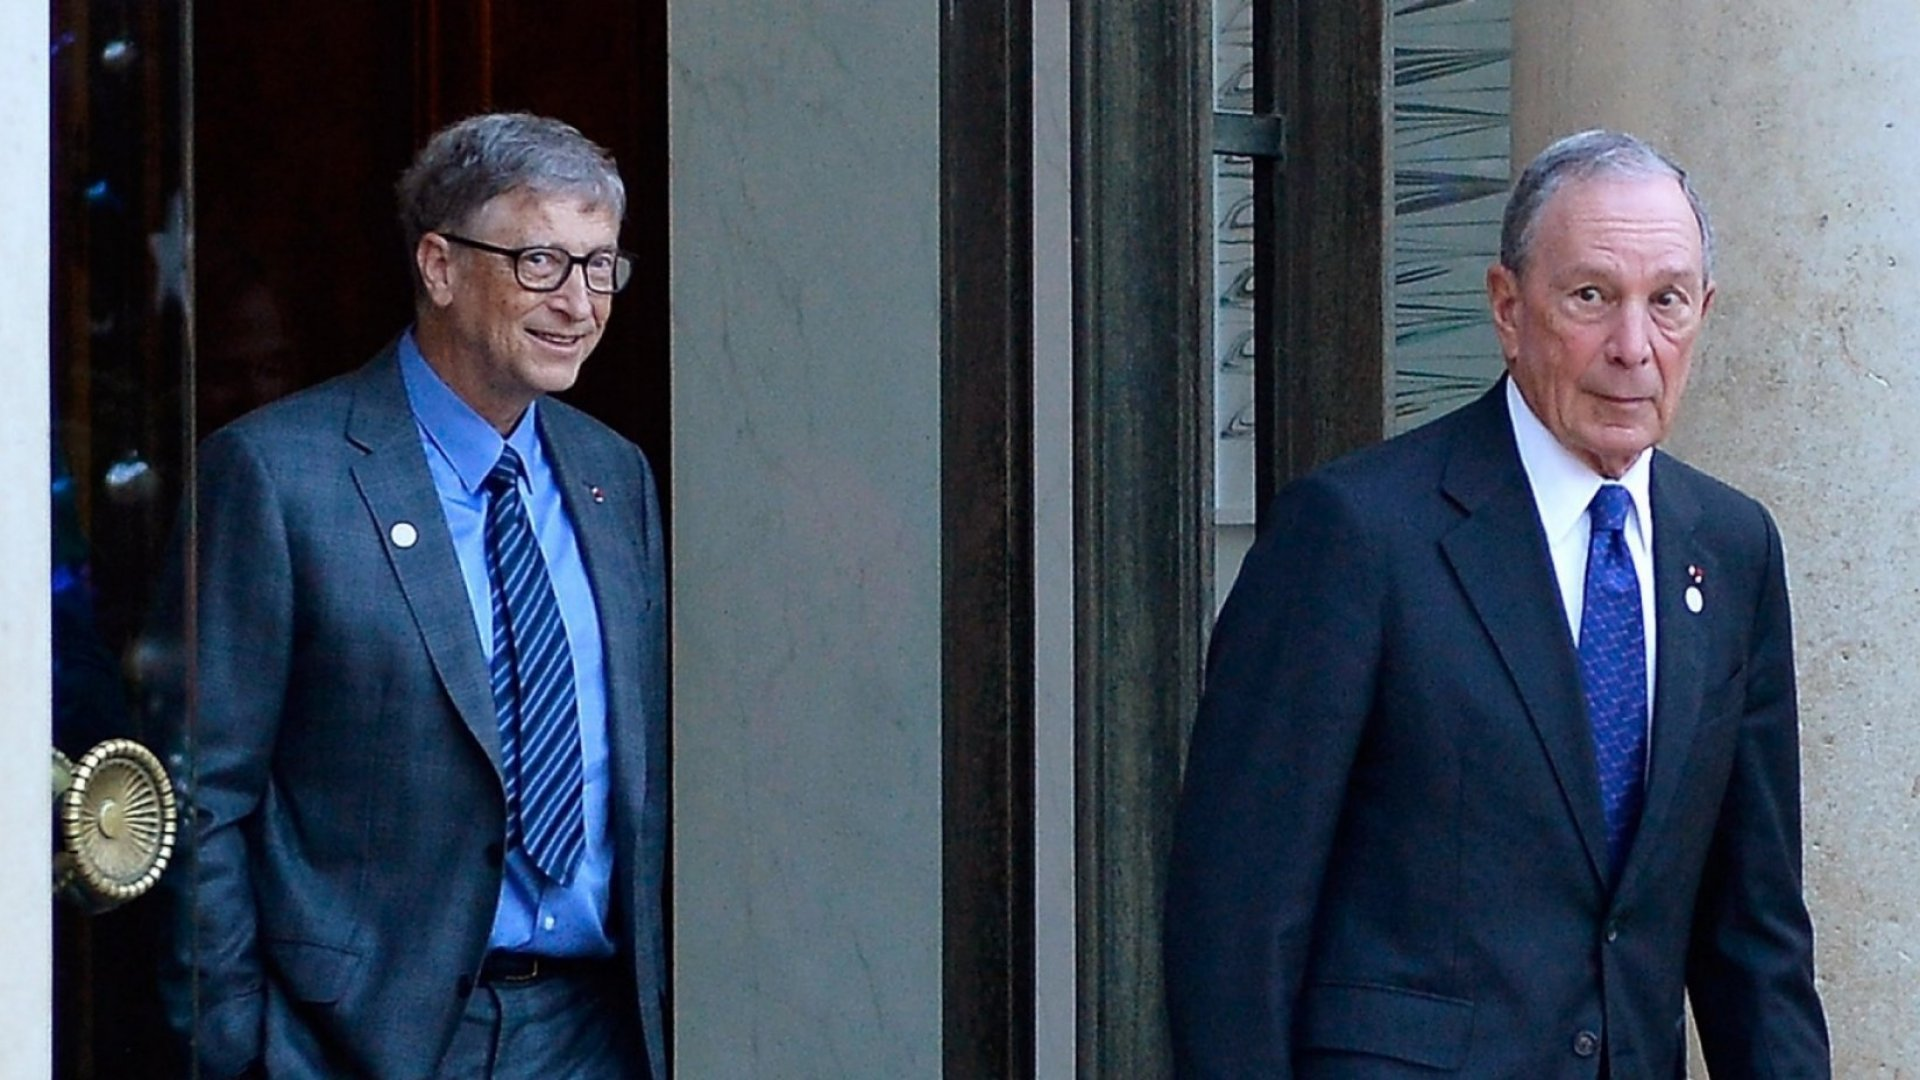 Michael Bloomberg Vs. Bill Gates: This 1 Short Statement Reveals the Key Difference in How They Define Success